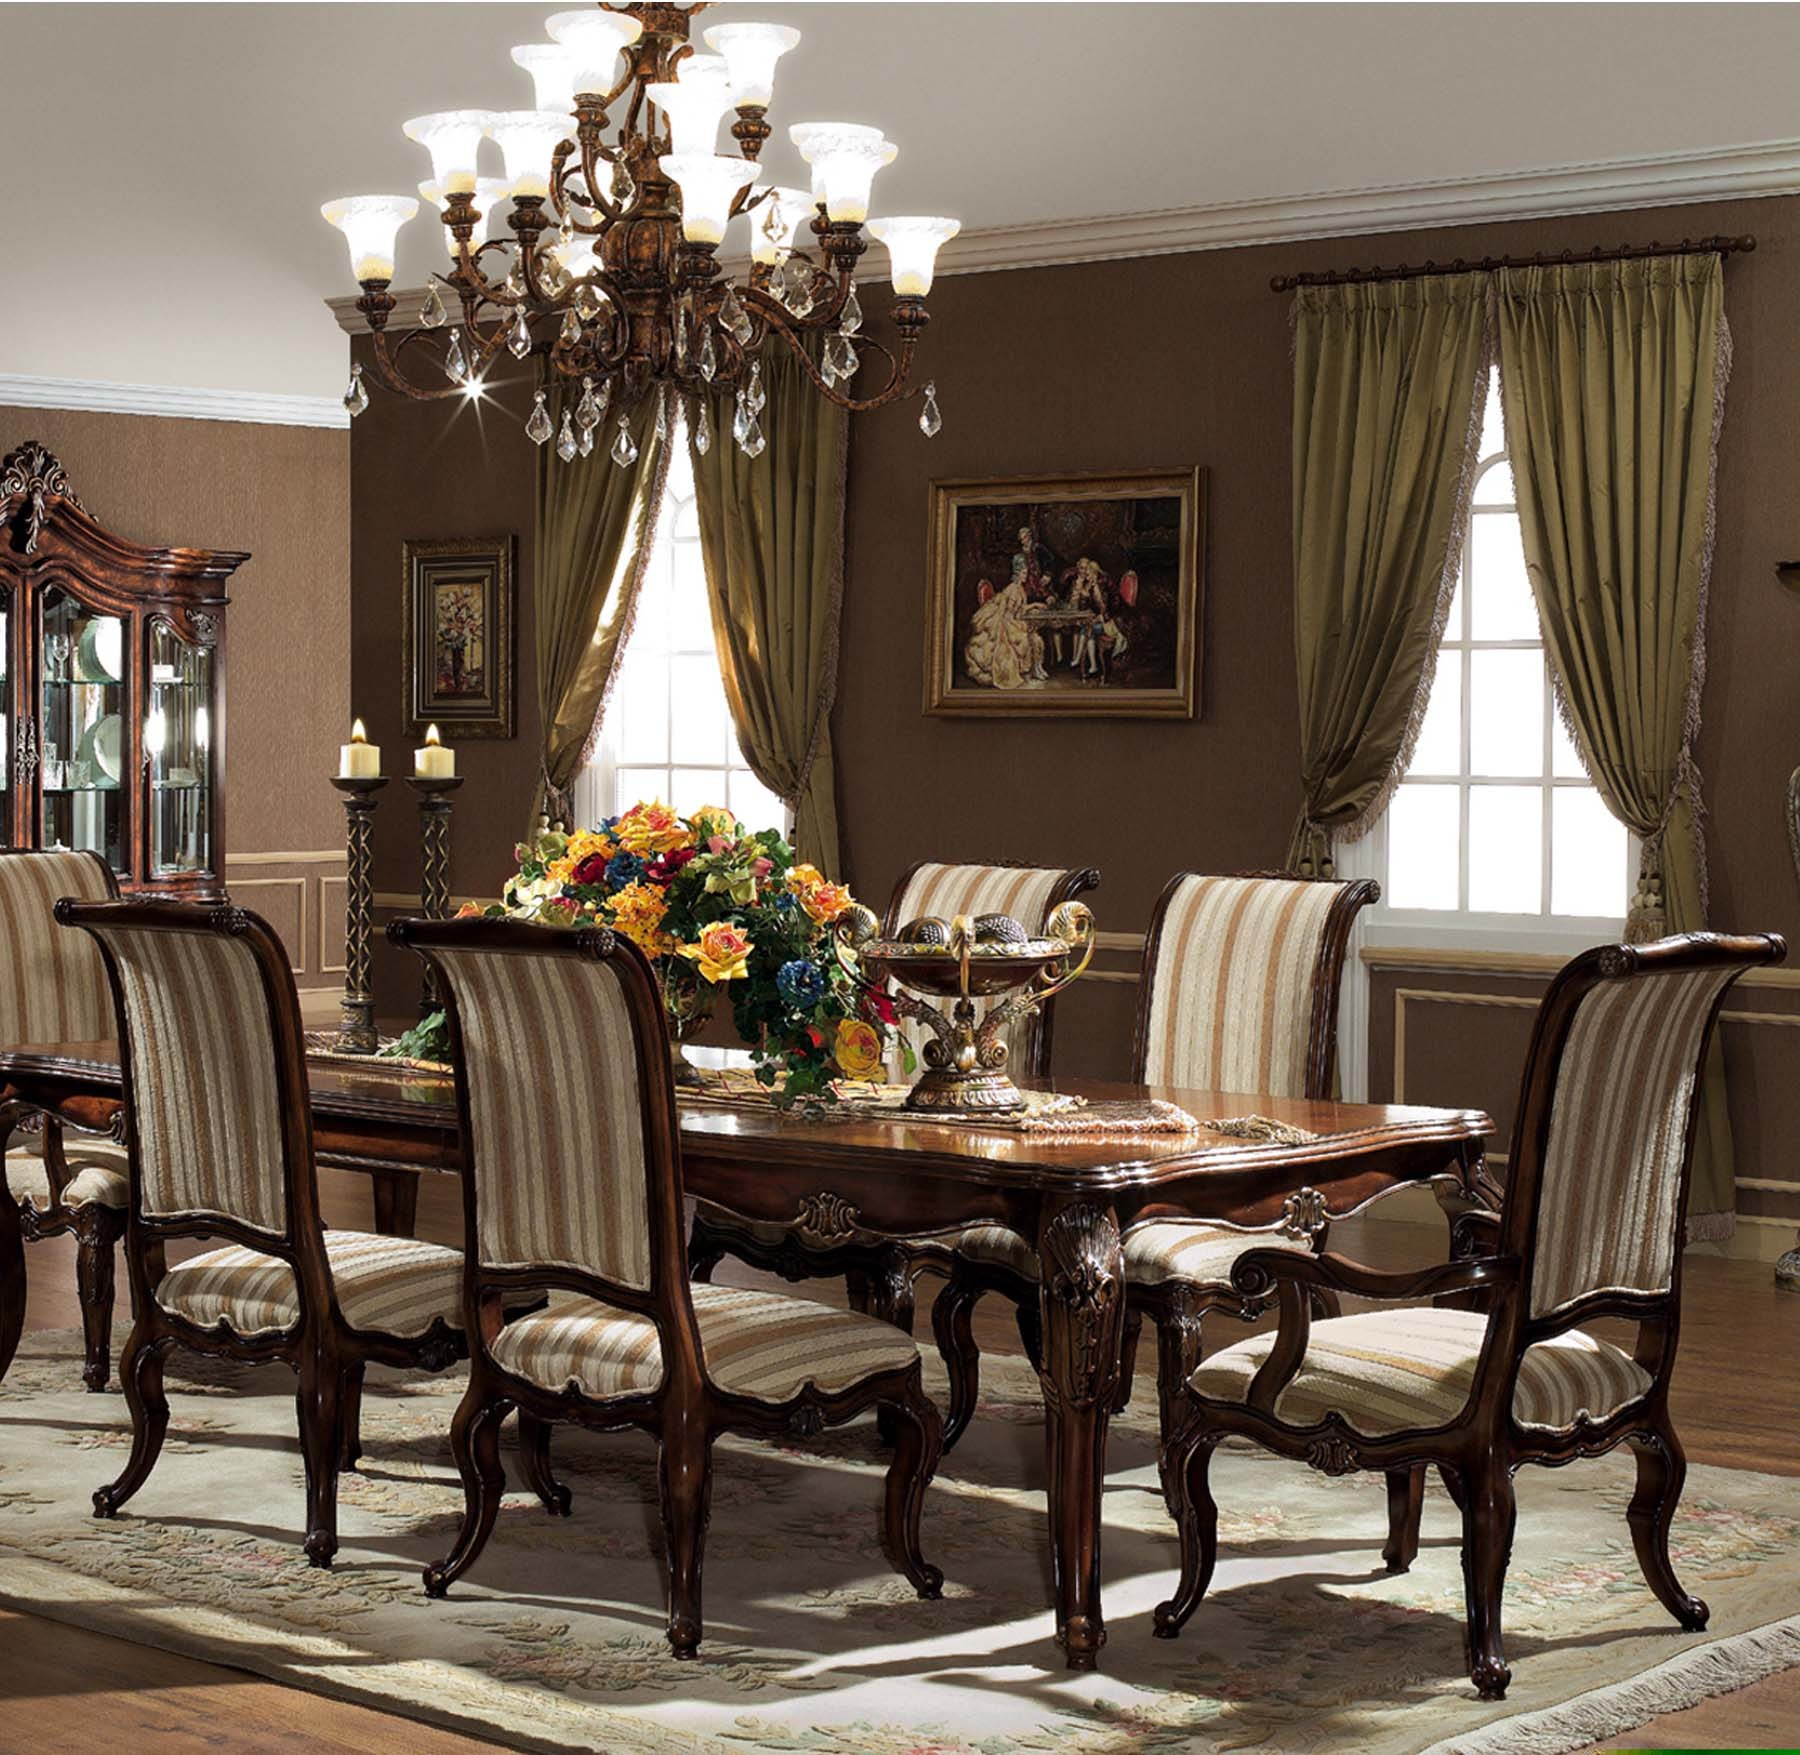 monterey dining table set gold accent shown antique walnut finish globe lighting portland round patio inch furniture legs mango wood caldwell side cloth home goods sets rattan